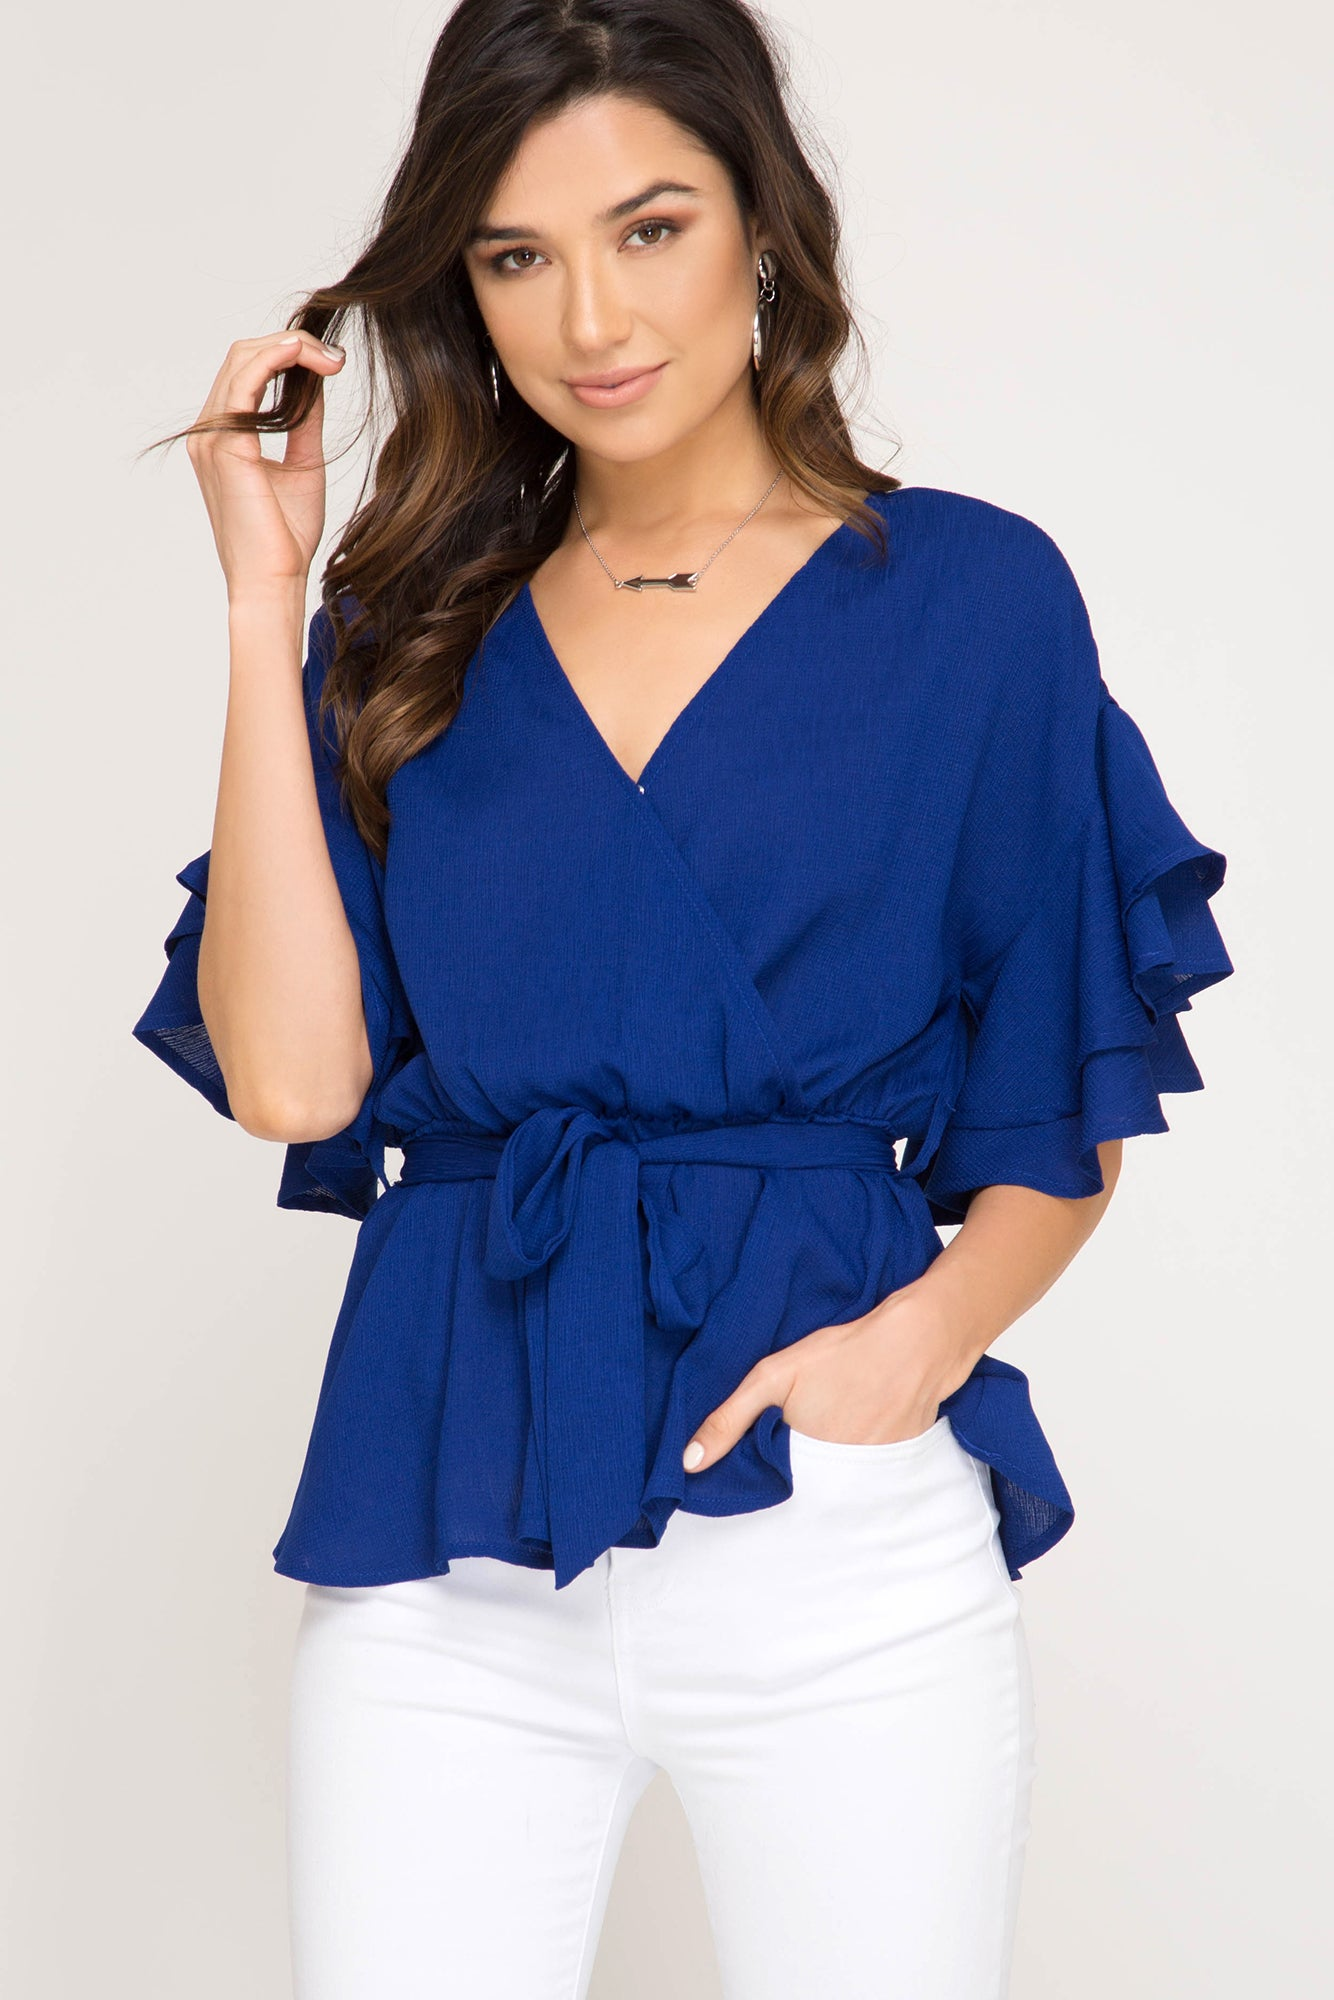 royal blue, she & sky, top, tie waist, ruffle sleeve, v neck, www.tooquteboutique.com, too qute boutique